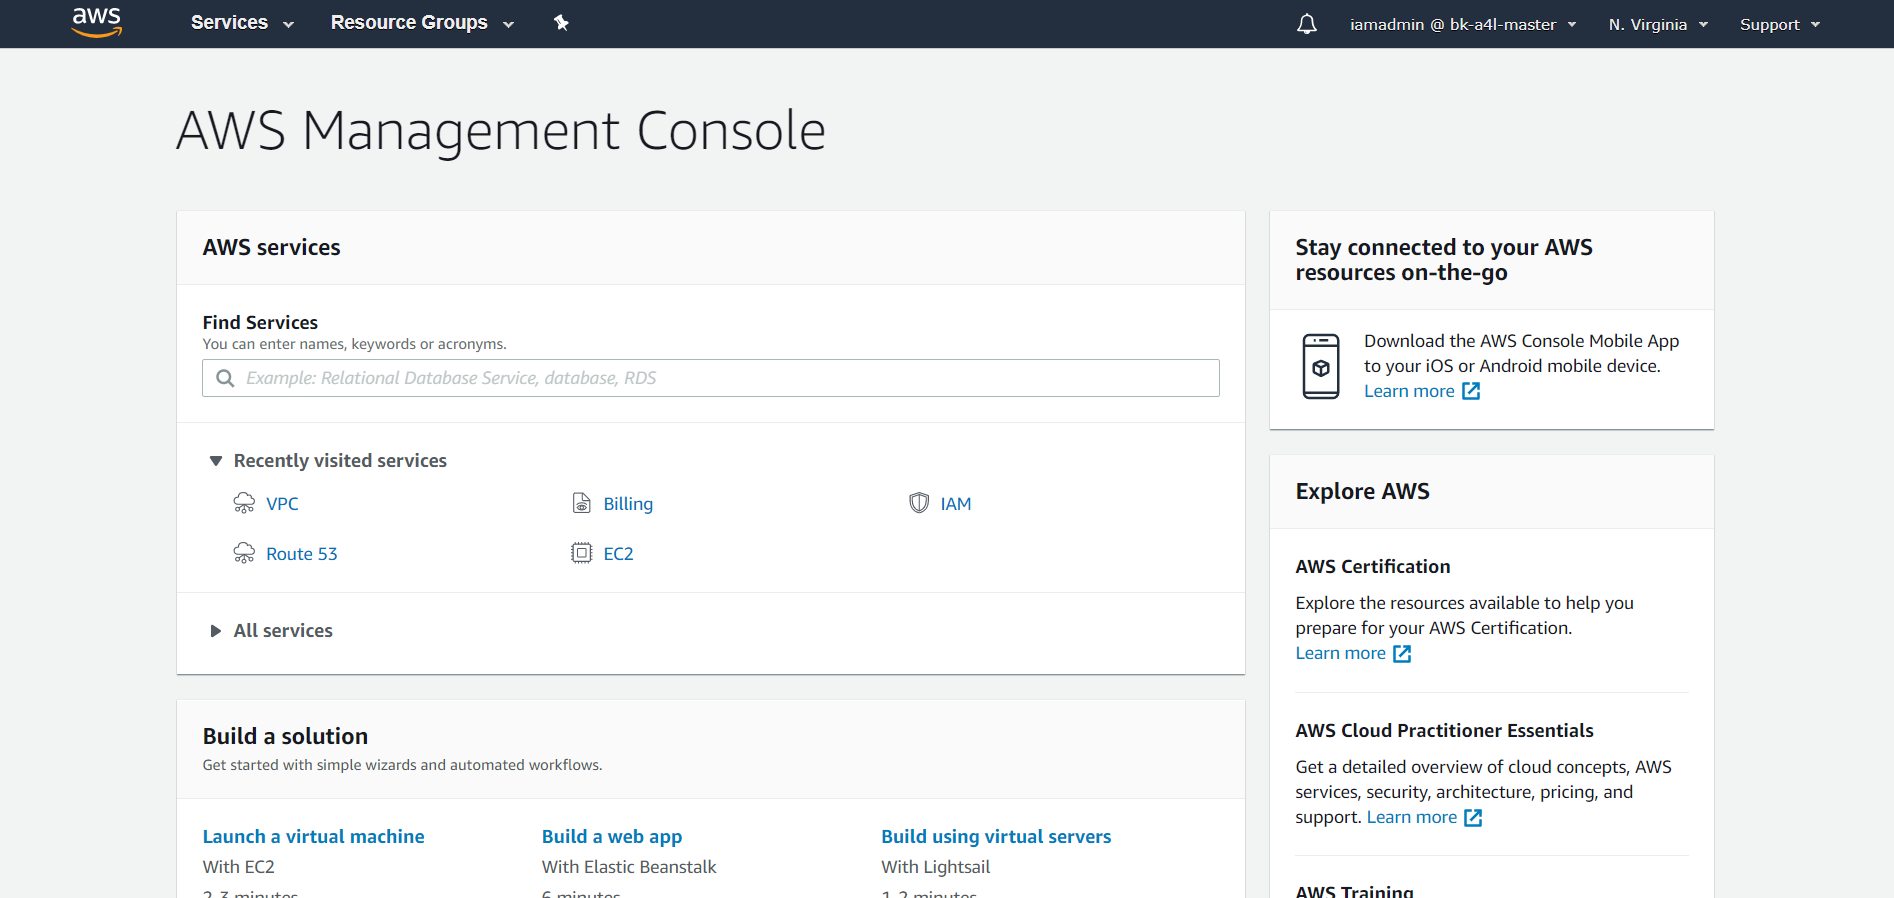 Login to AWS management console